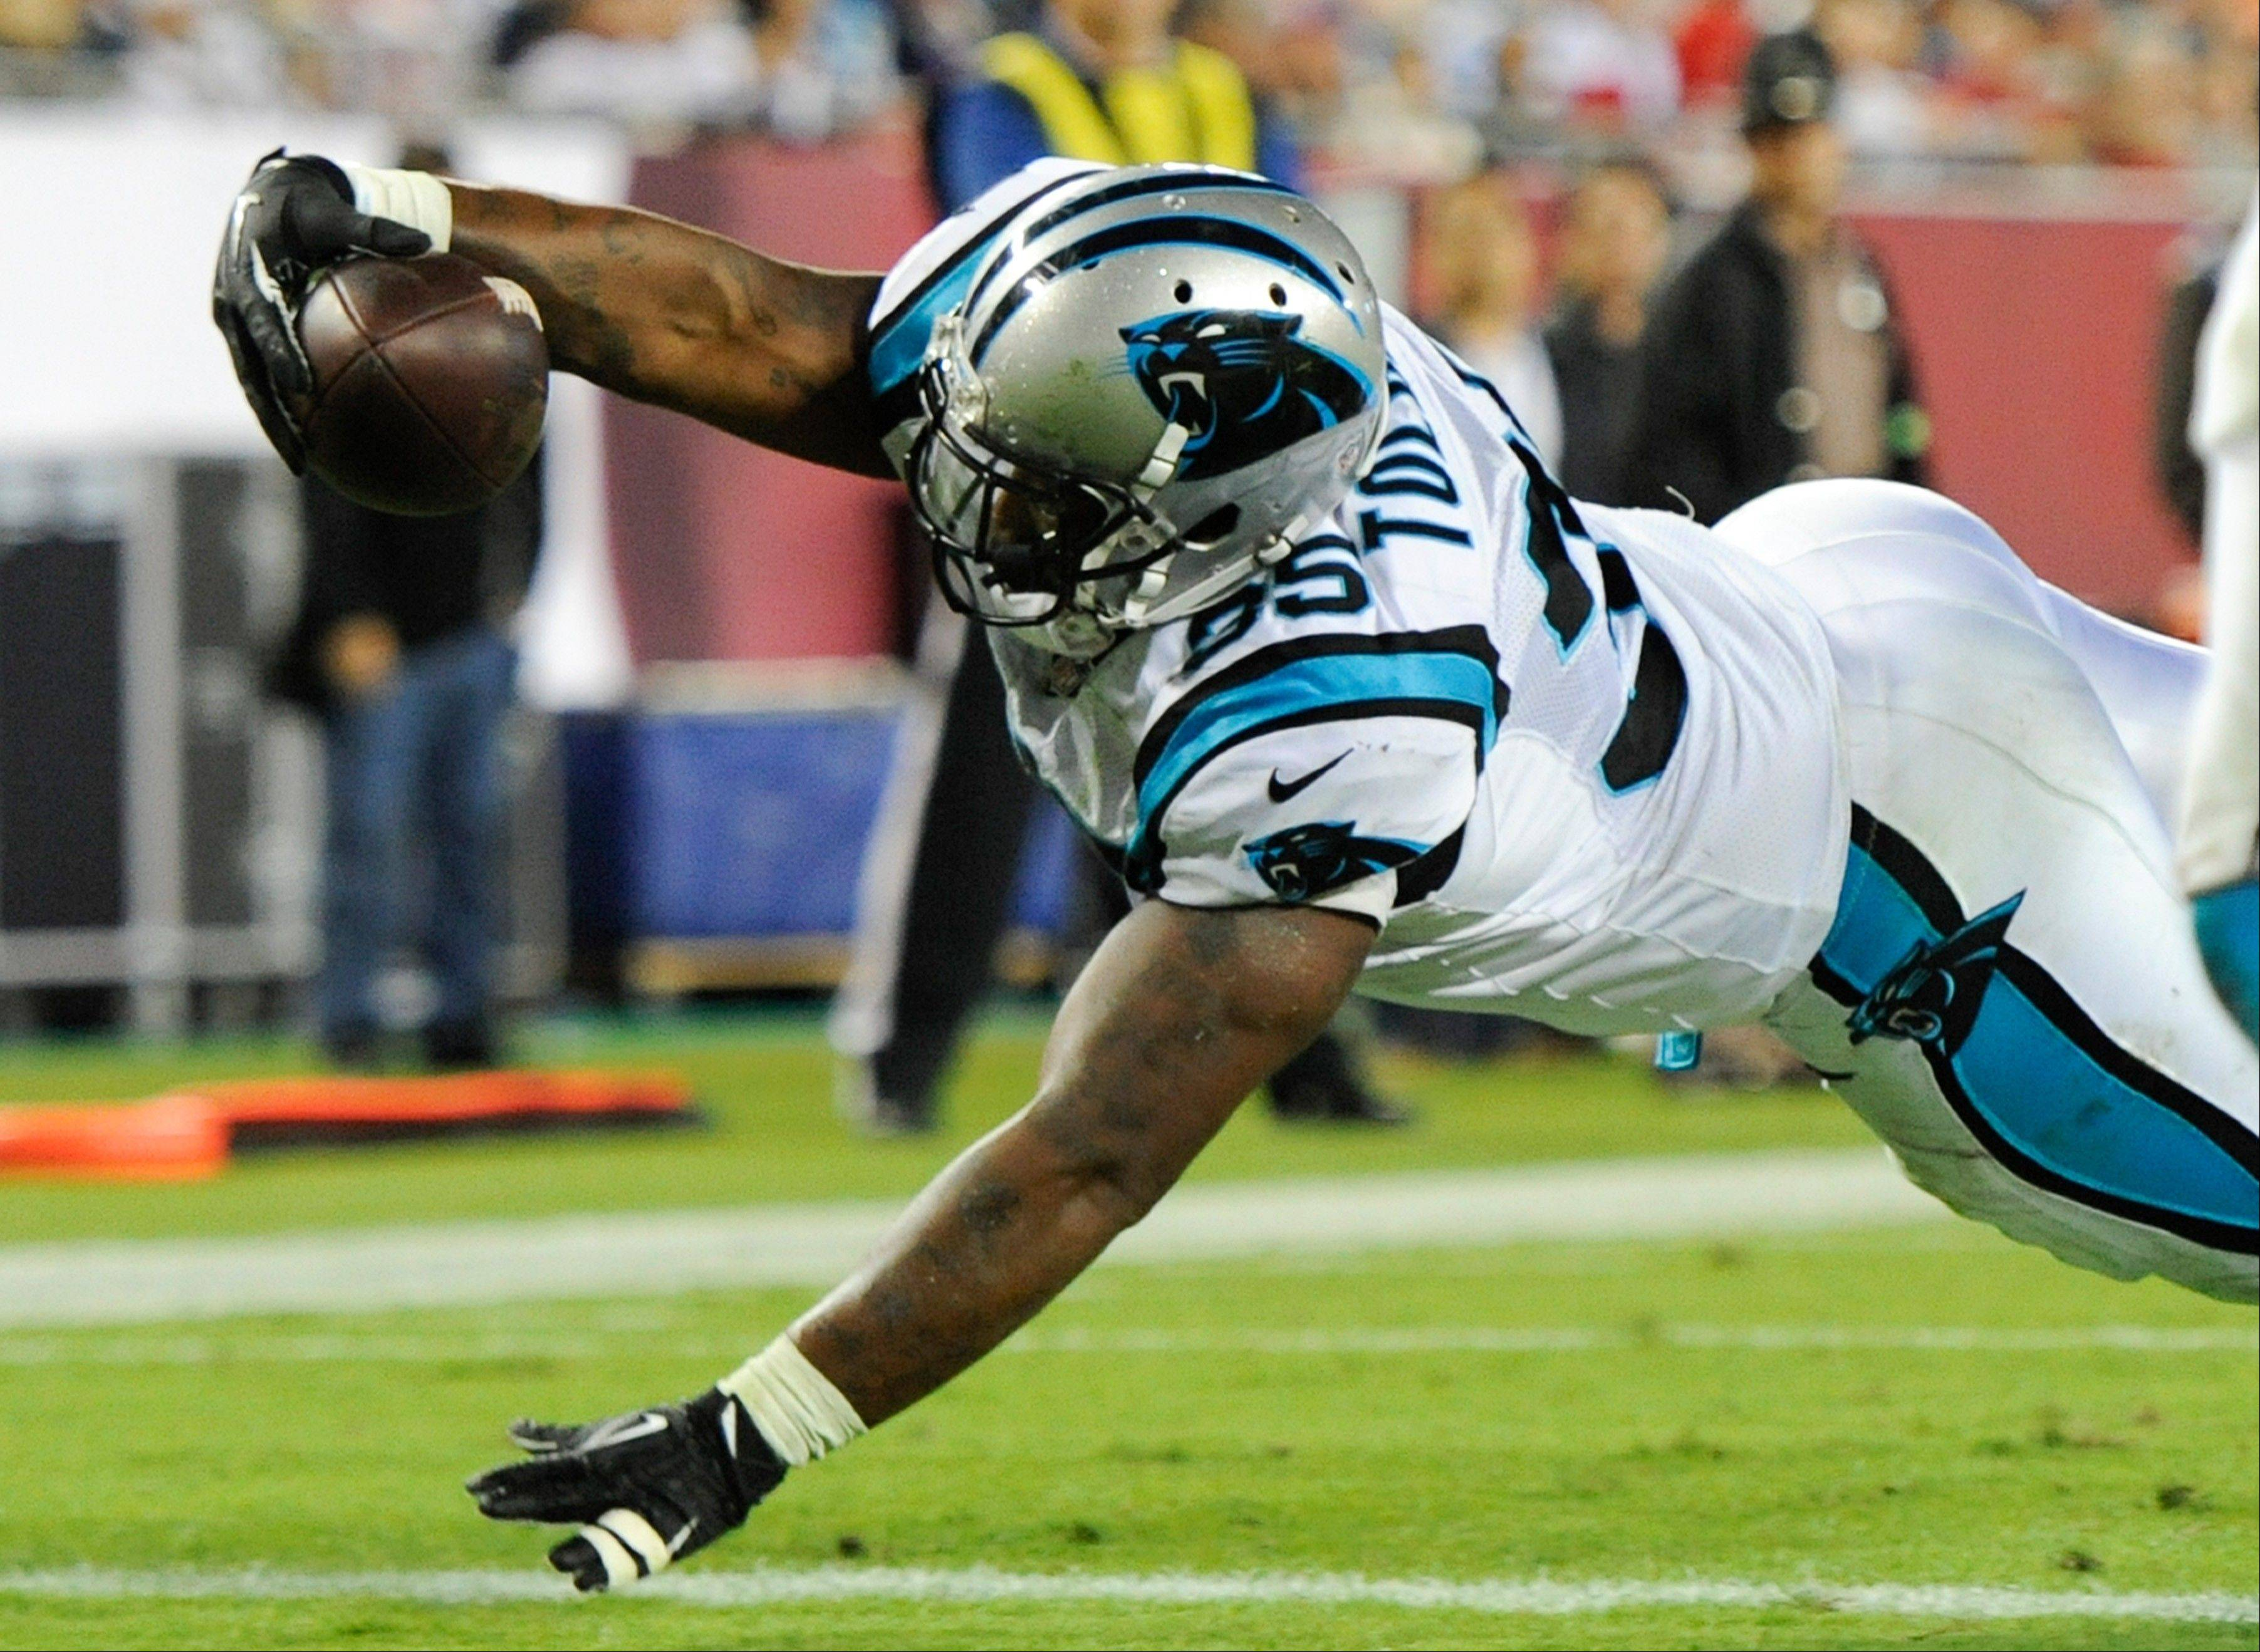 Carolina Panthers fullback Mike Tolbert dives over the goal line on a 3-yard touchdown pass play against the Tampa Bay Buccaneers on Thursday night.